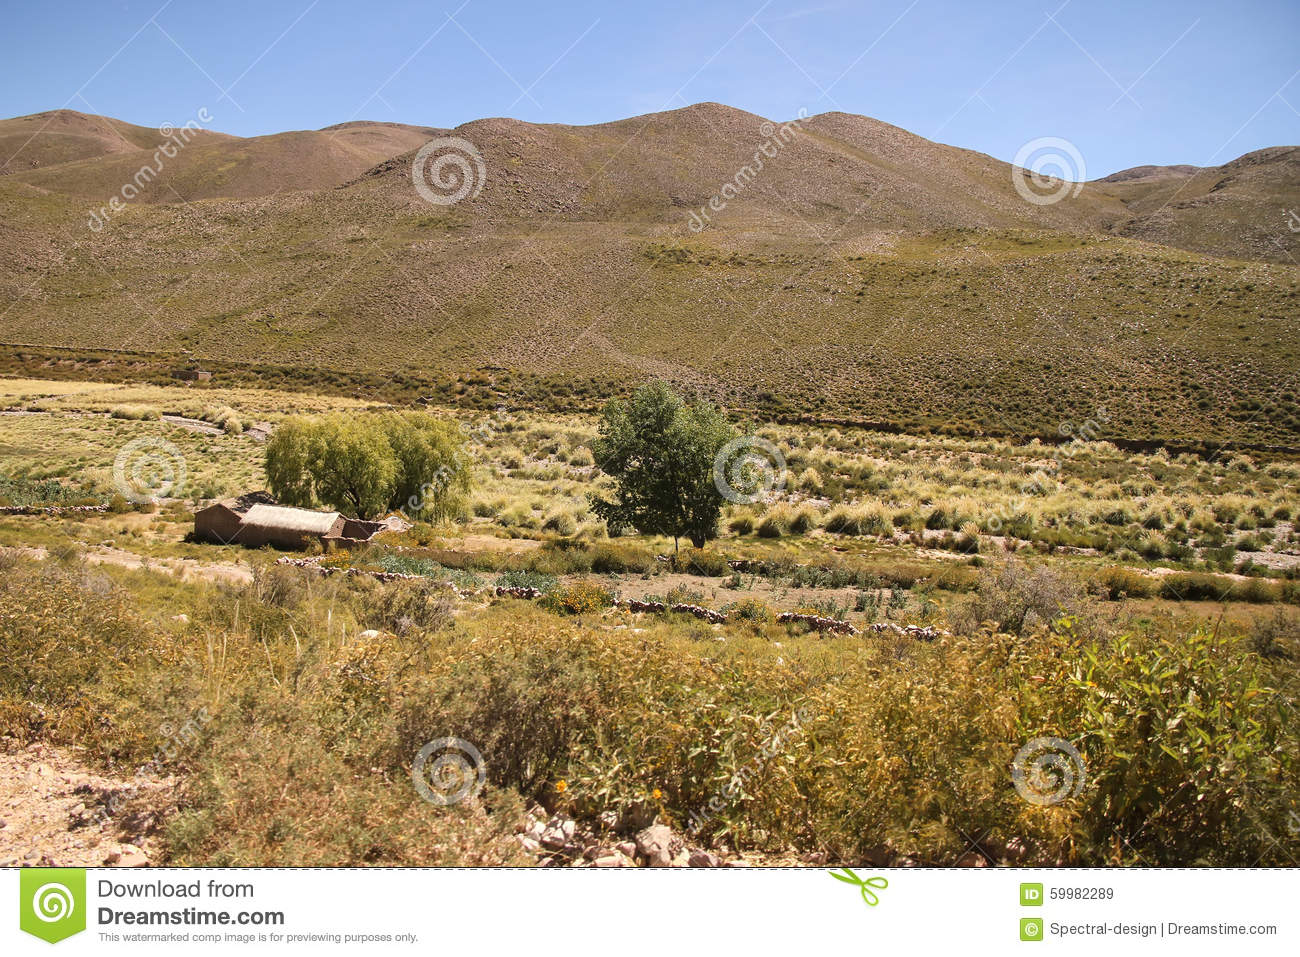 map of south america with Stock Photo Landscape Jujuy North Argentina South America Image59982289 on 22846730 moreover Creolia Saint Denis La Reunion as well 1S furthermore Costa Daurada Tourist Map furthermore Map Mauritius.